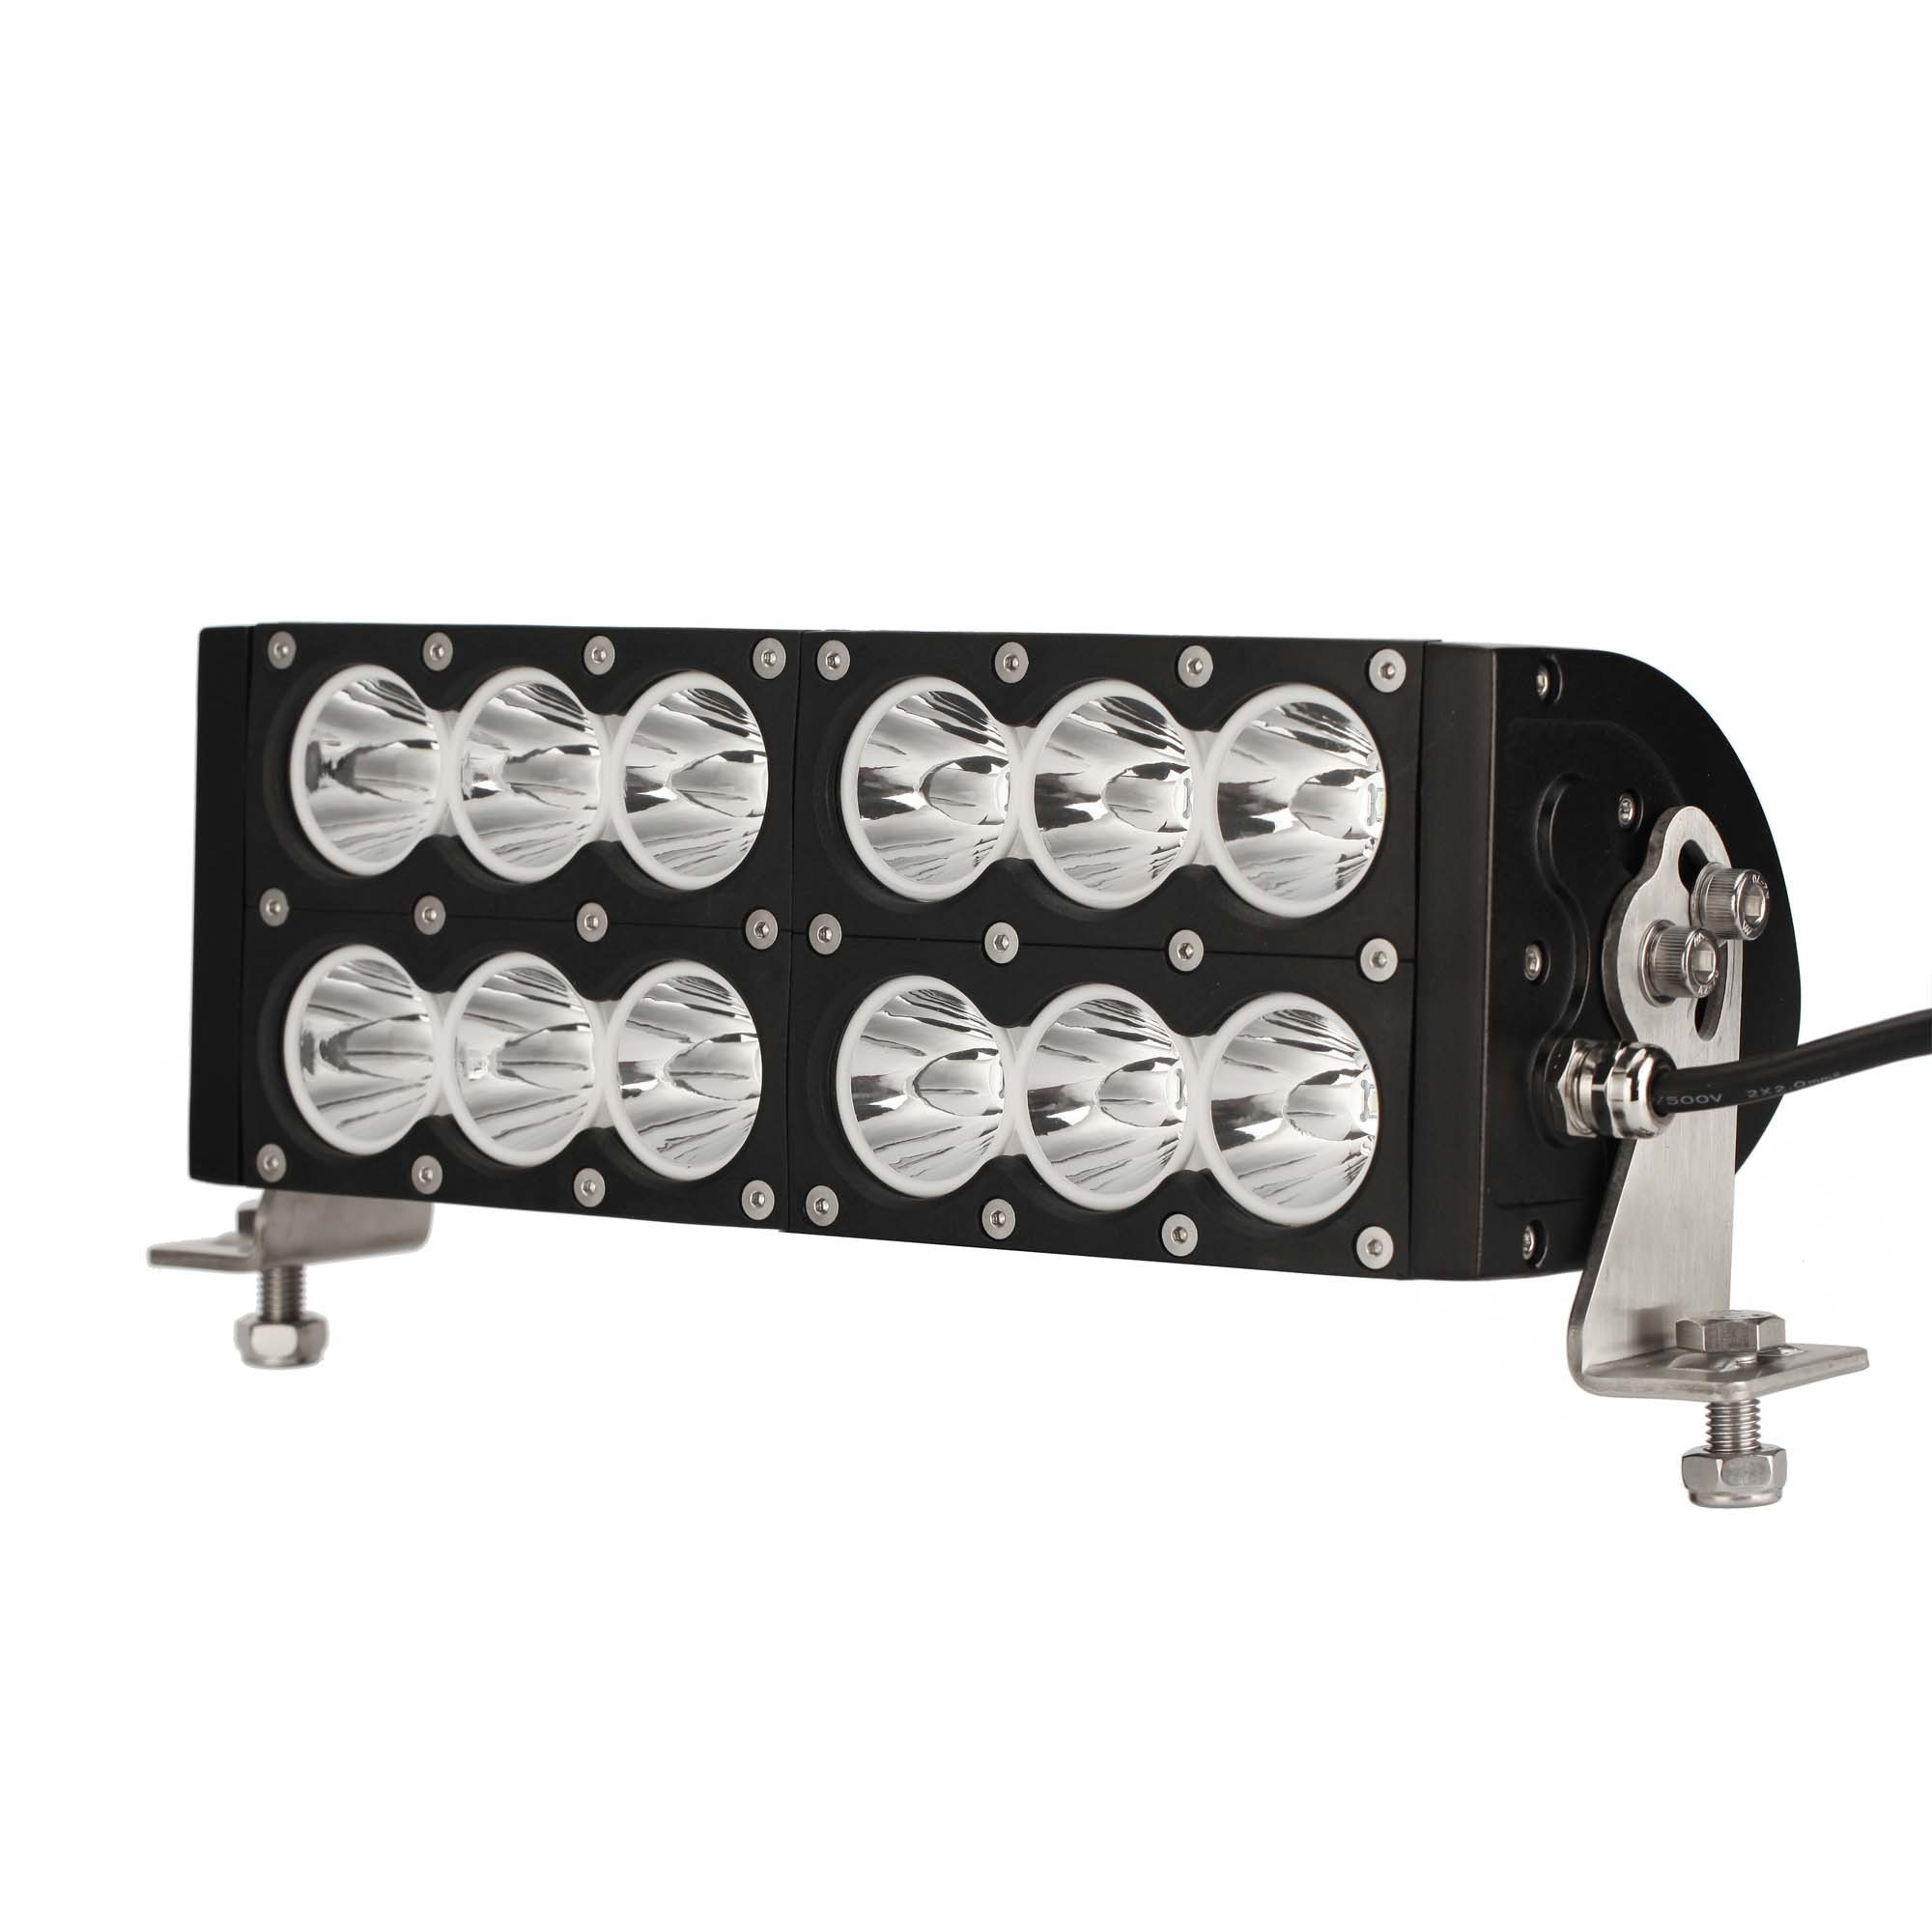 Led light work driving spot flood combo Atus suv offroad Truck ...